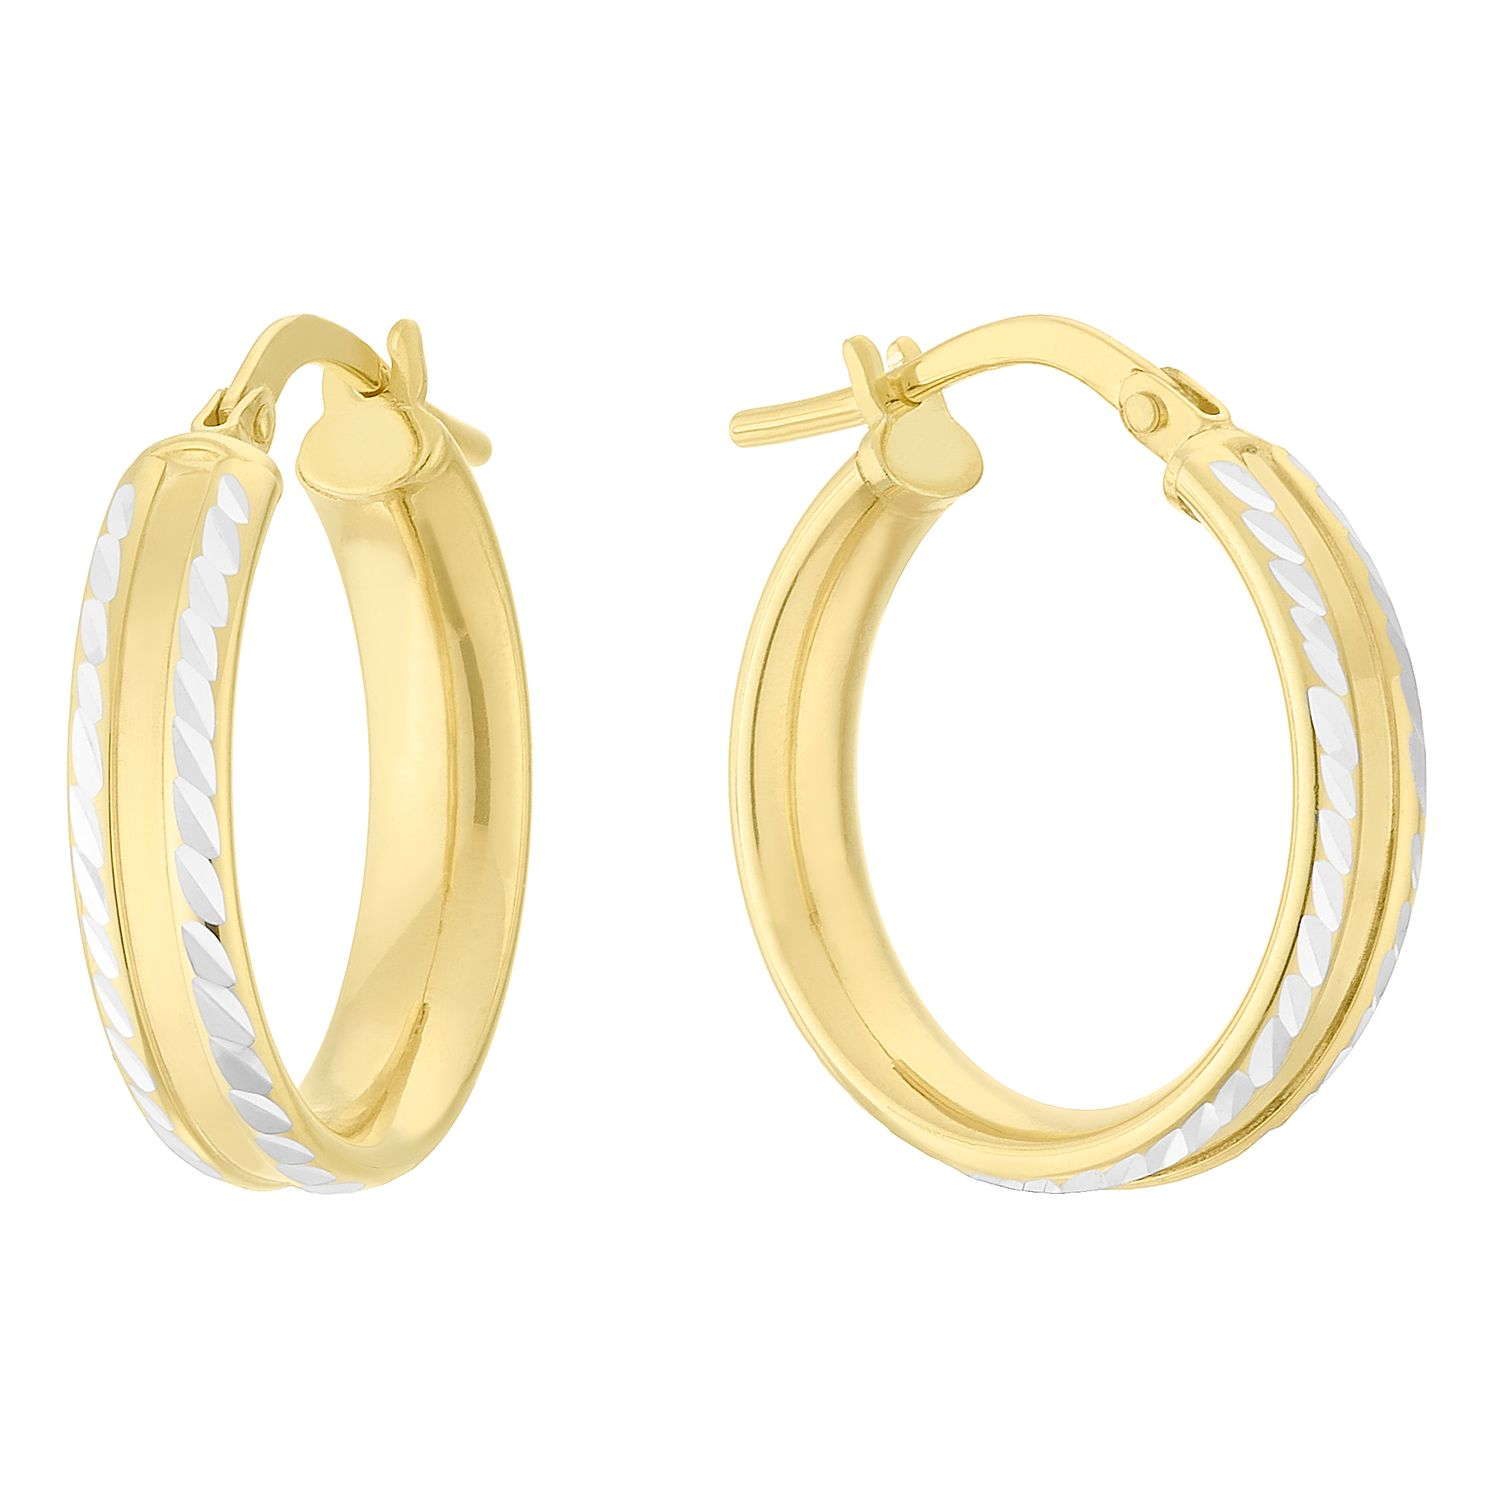 Together Silver & 9ct Bonded Gold Dia/Cut 15mm Hoop Earrings - Product number 4056329